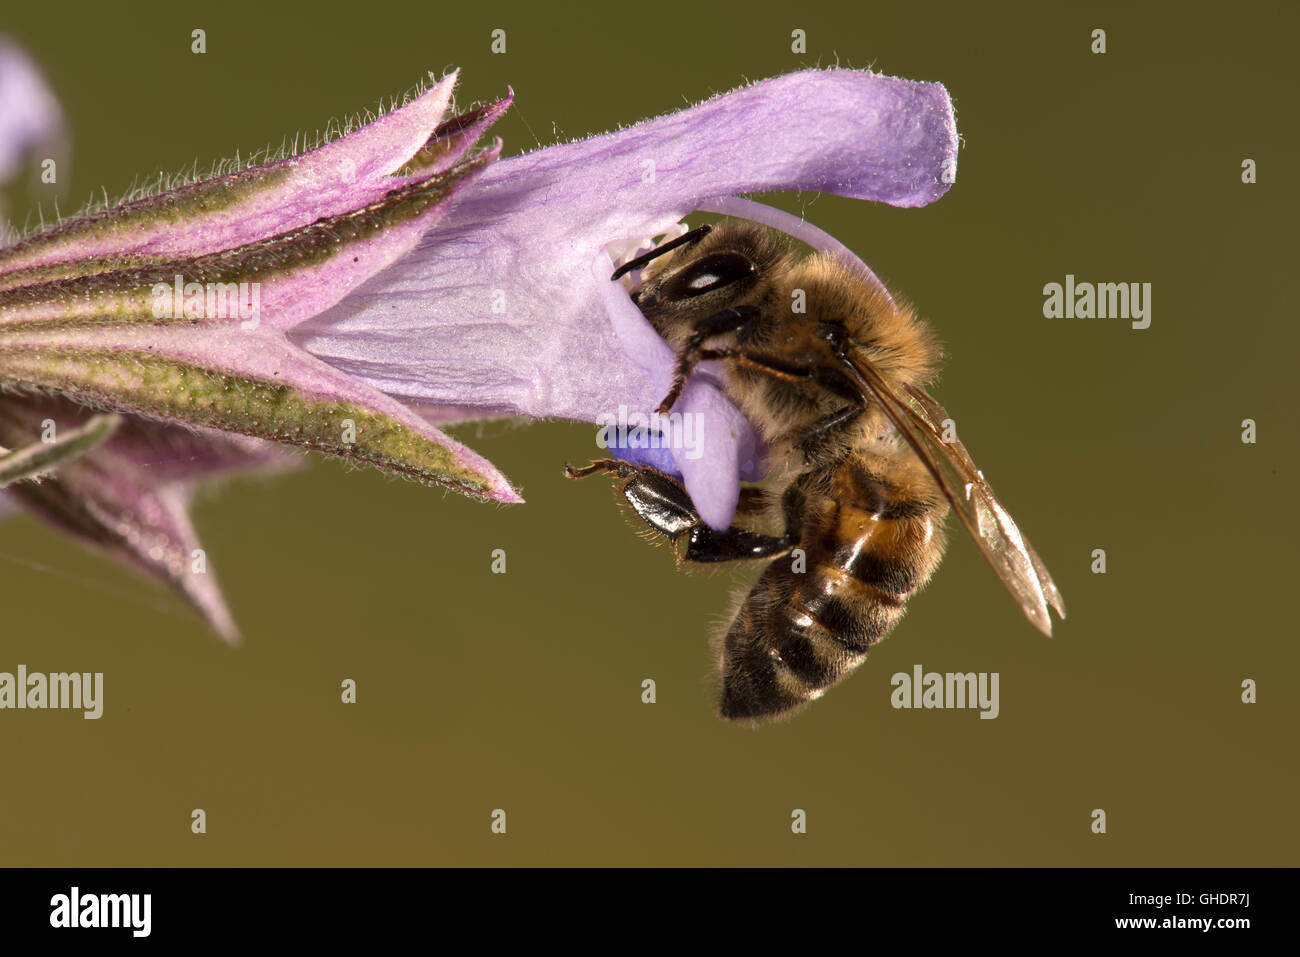 Honey Bee Apis mellifera - Stock Image